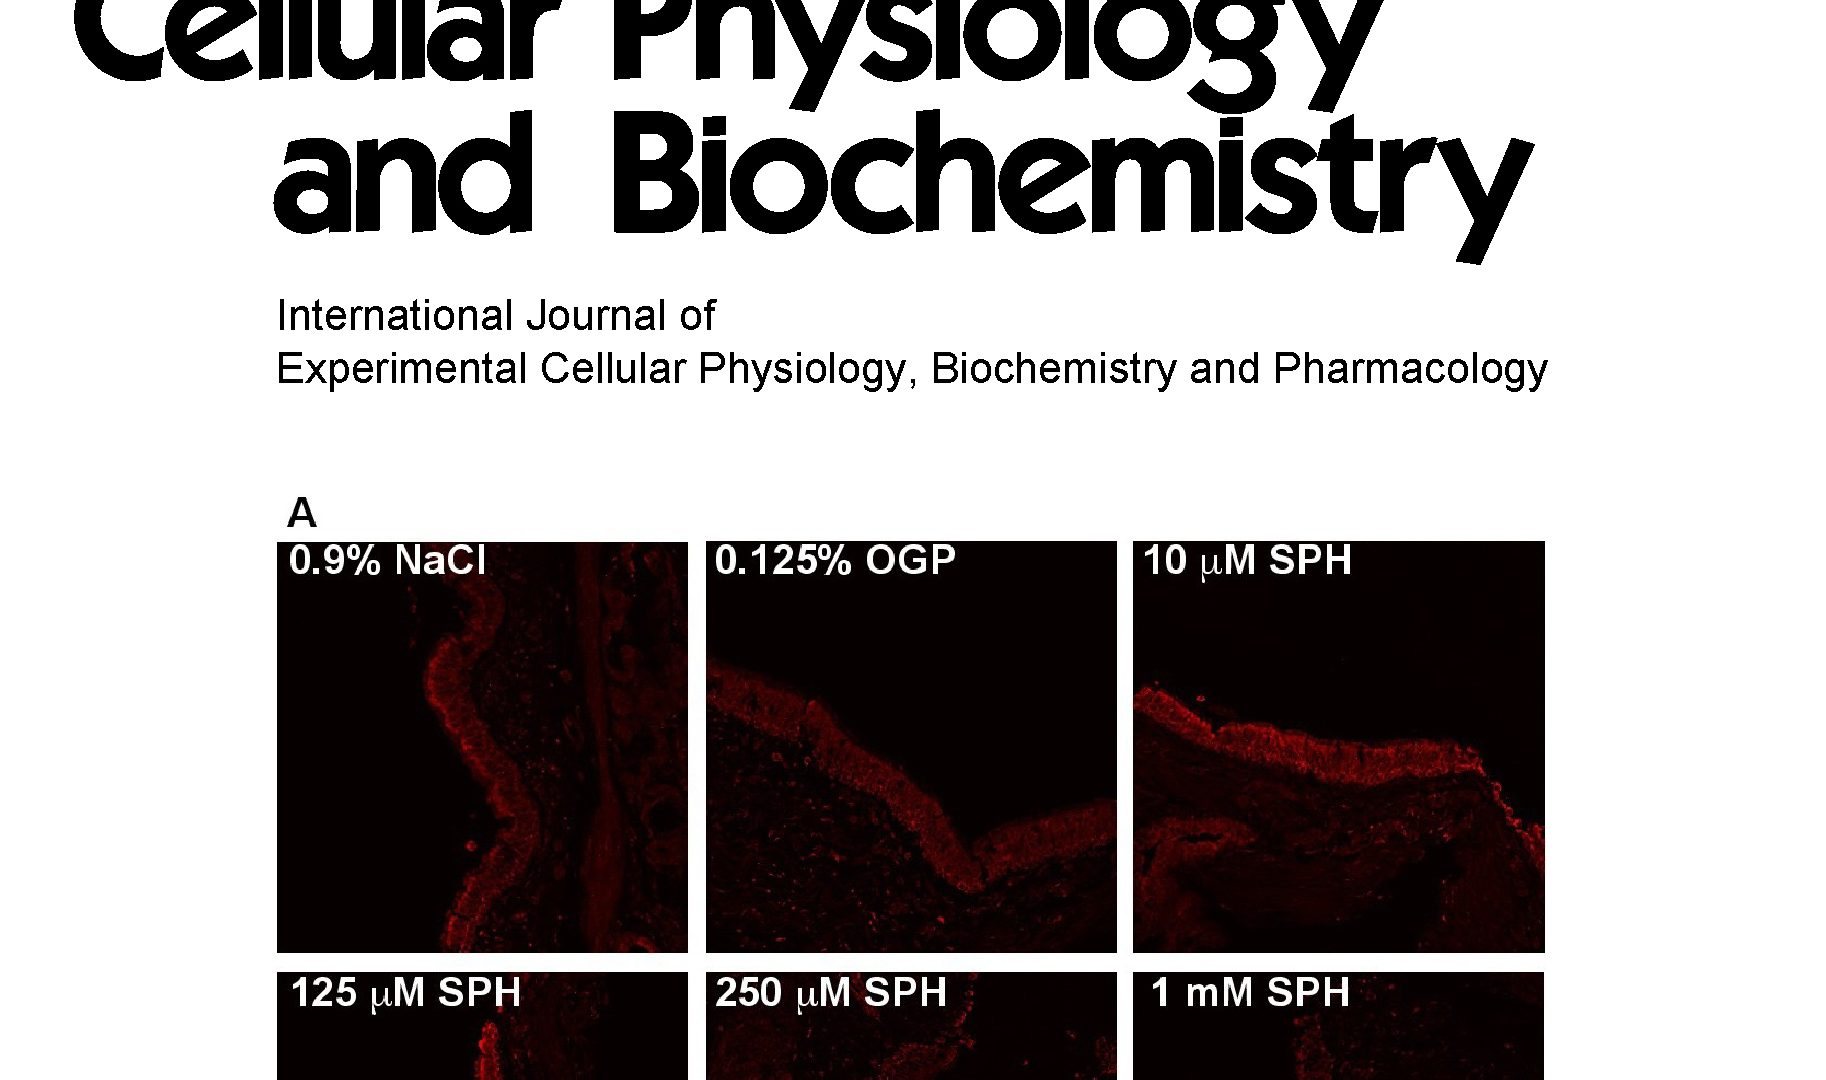 Control of Muscle Fibro-Adipogenic Progenitors by Myogenic Lineage is Altered in Aging and Duchenne Muscular Dystrophy